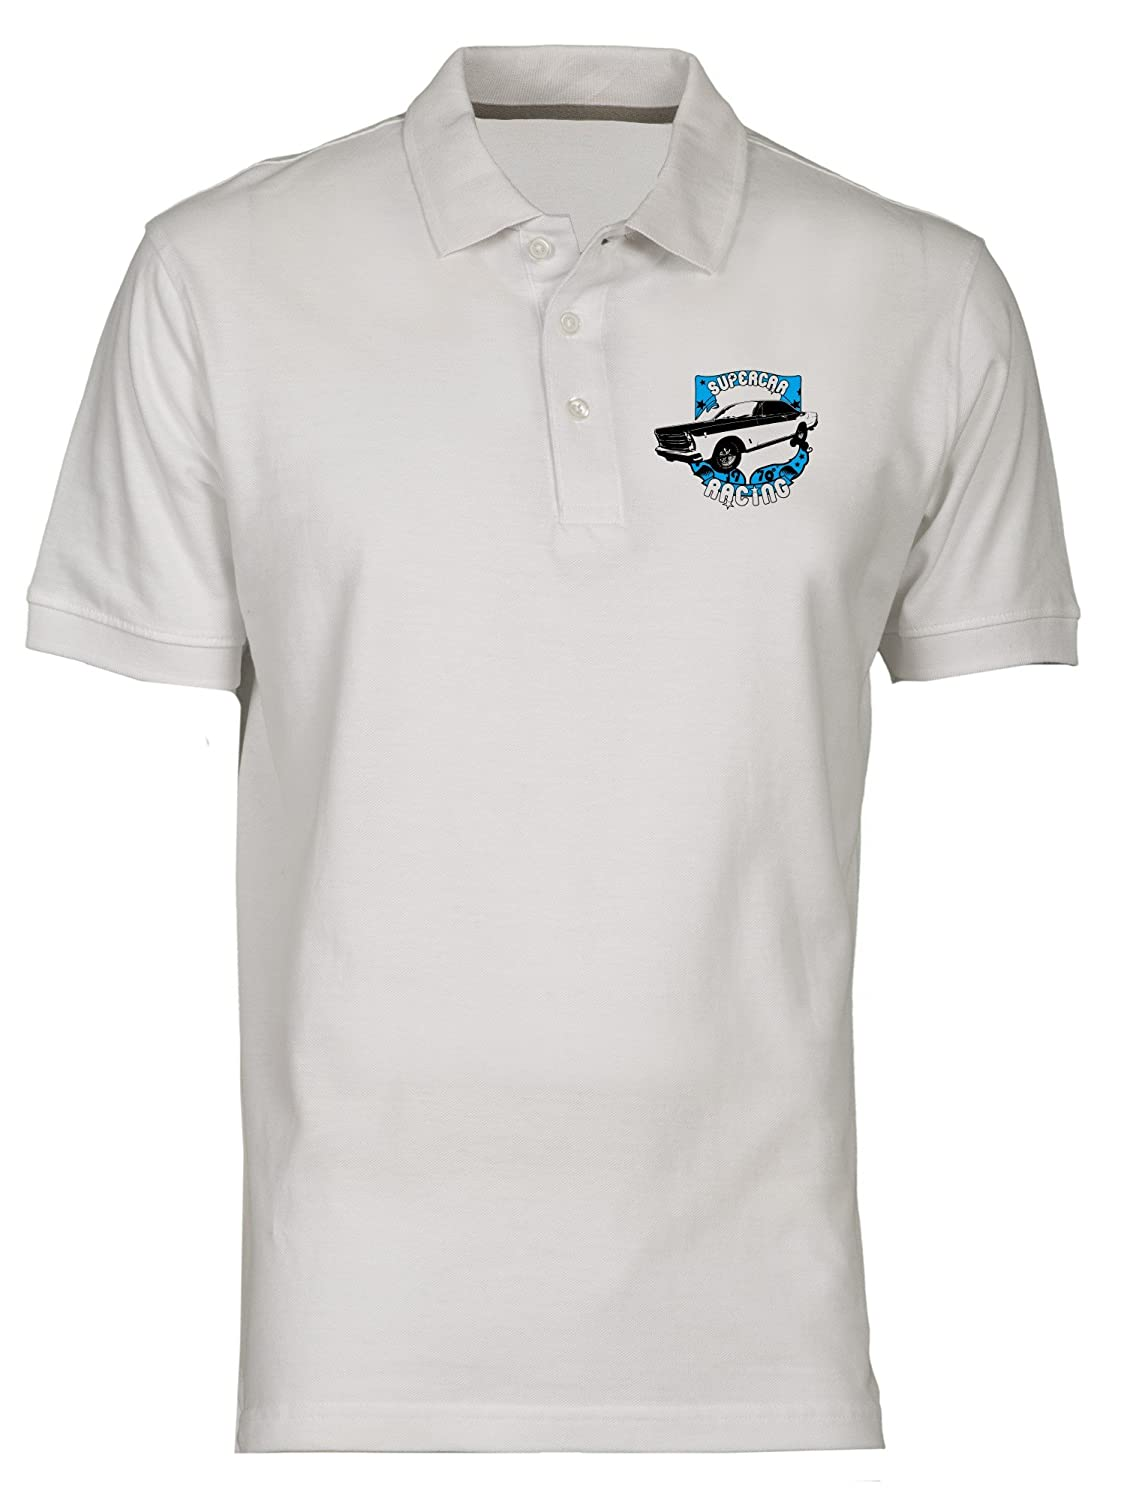 Polo por Hombre Blanco T0272 Super Car Racing Auto Moto Motori ...